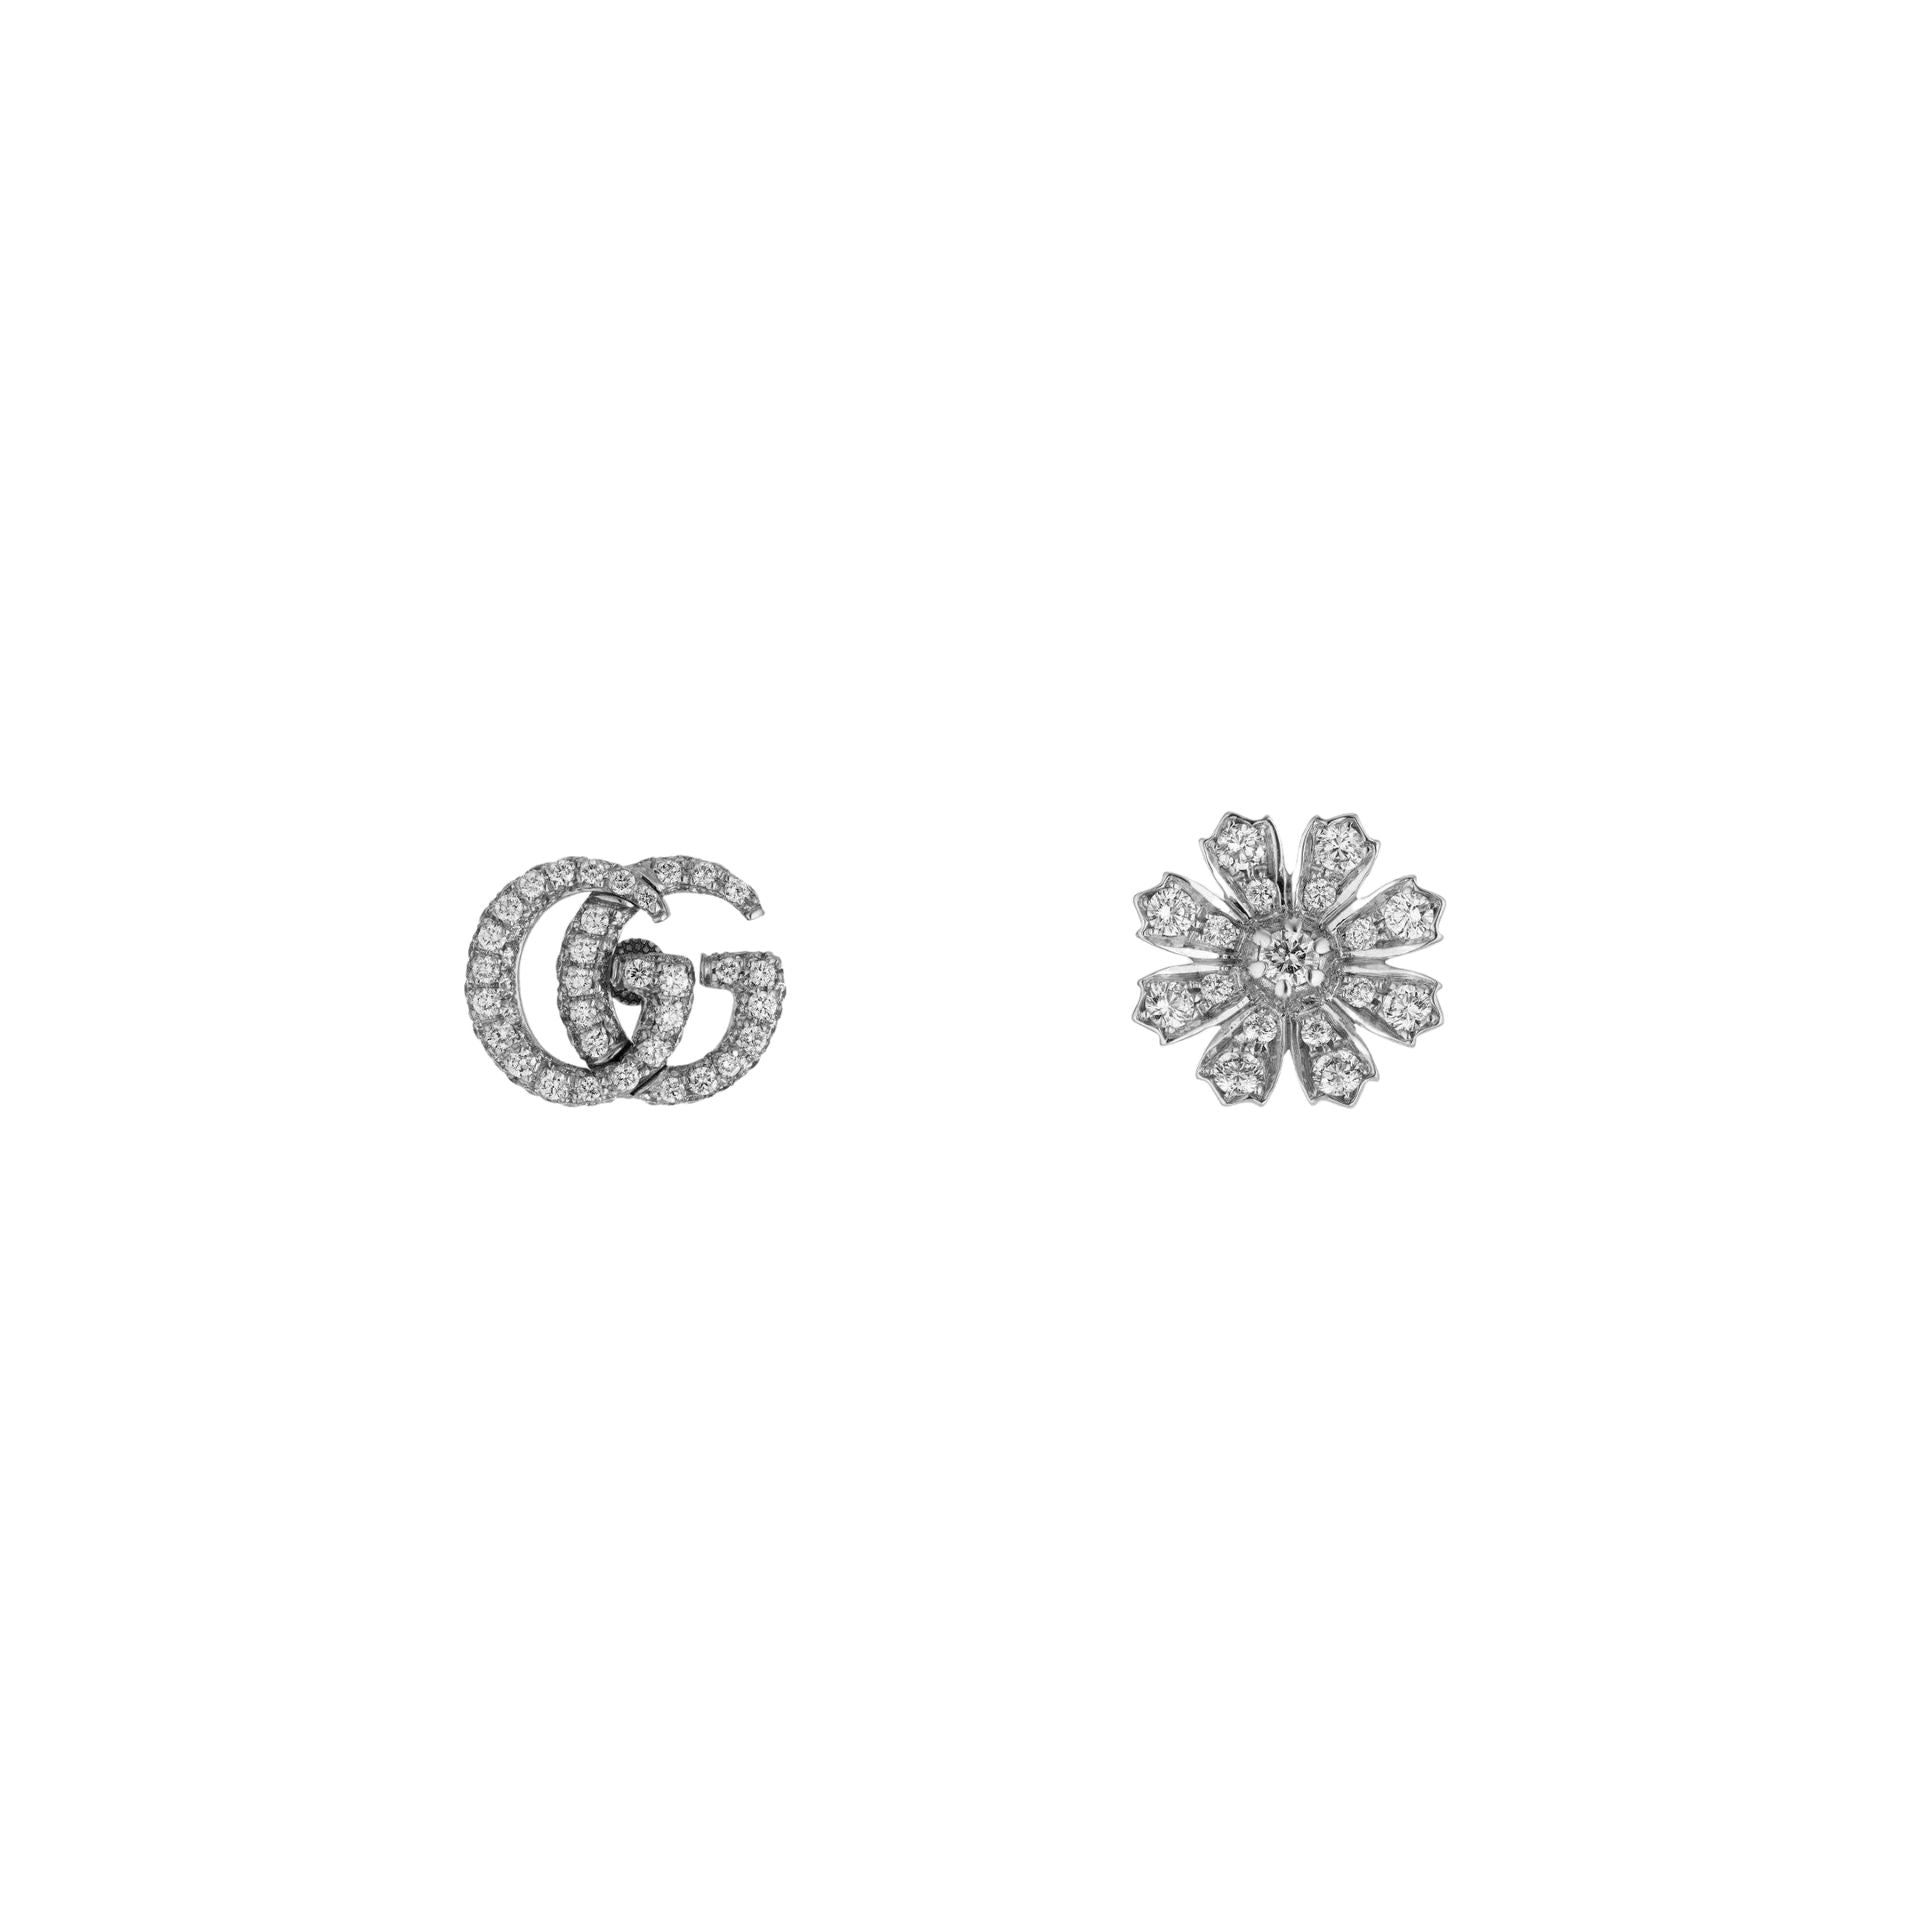 Gucci Flora Stud Earrings in 18k White Gold with Diamonds - Orsini Jewellers NZ